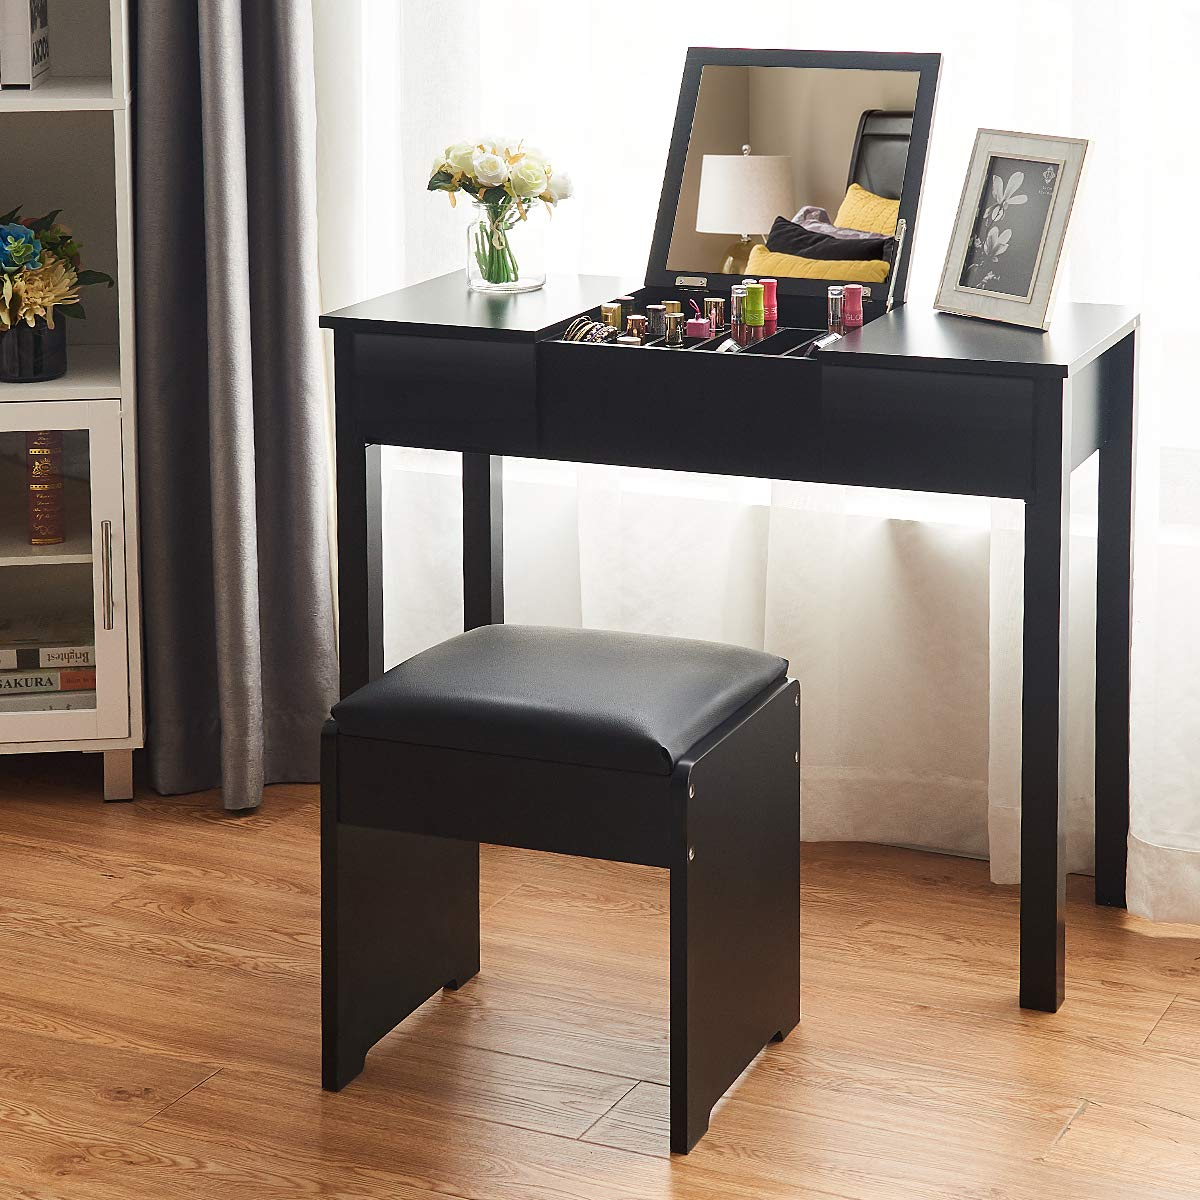 Giantex Bathroom Vanity Makeup Dressing Table with Flip Top Mirror 2 Drawers & 3 Removable Organizers, PU Leather Padded Seat Bench Chair, Bedroom Vanities with Stool, Black